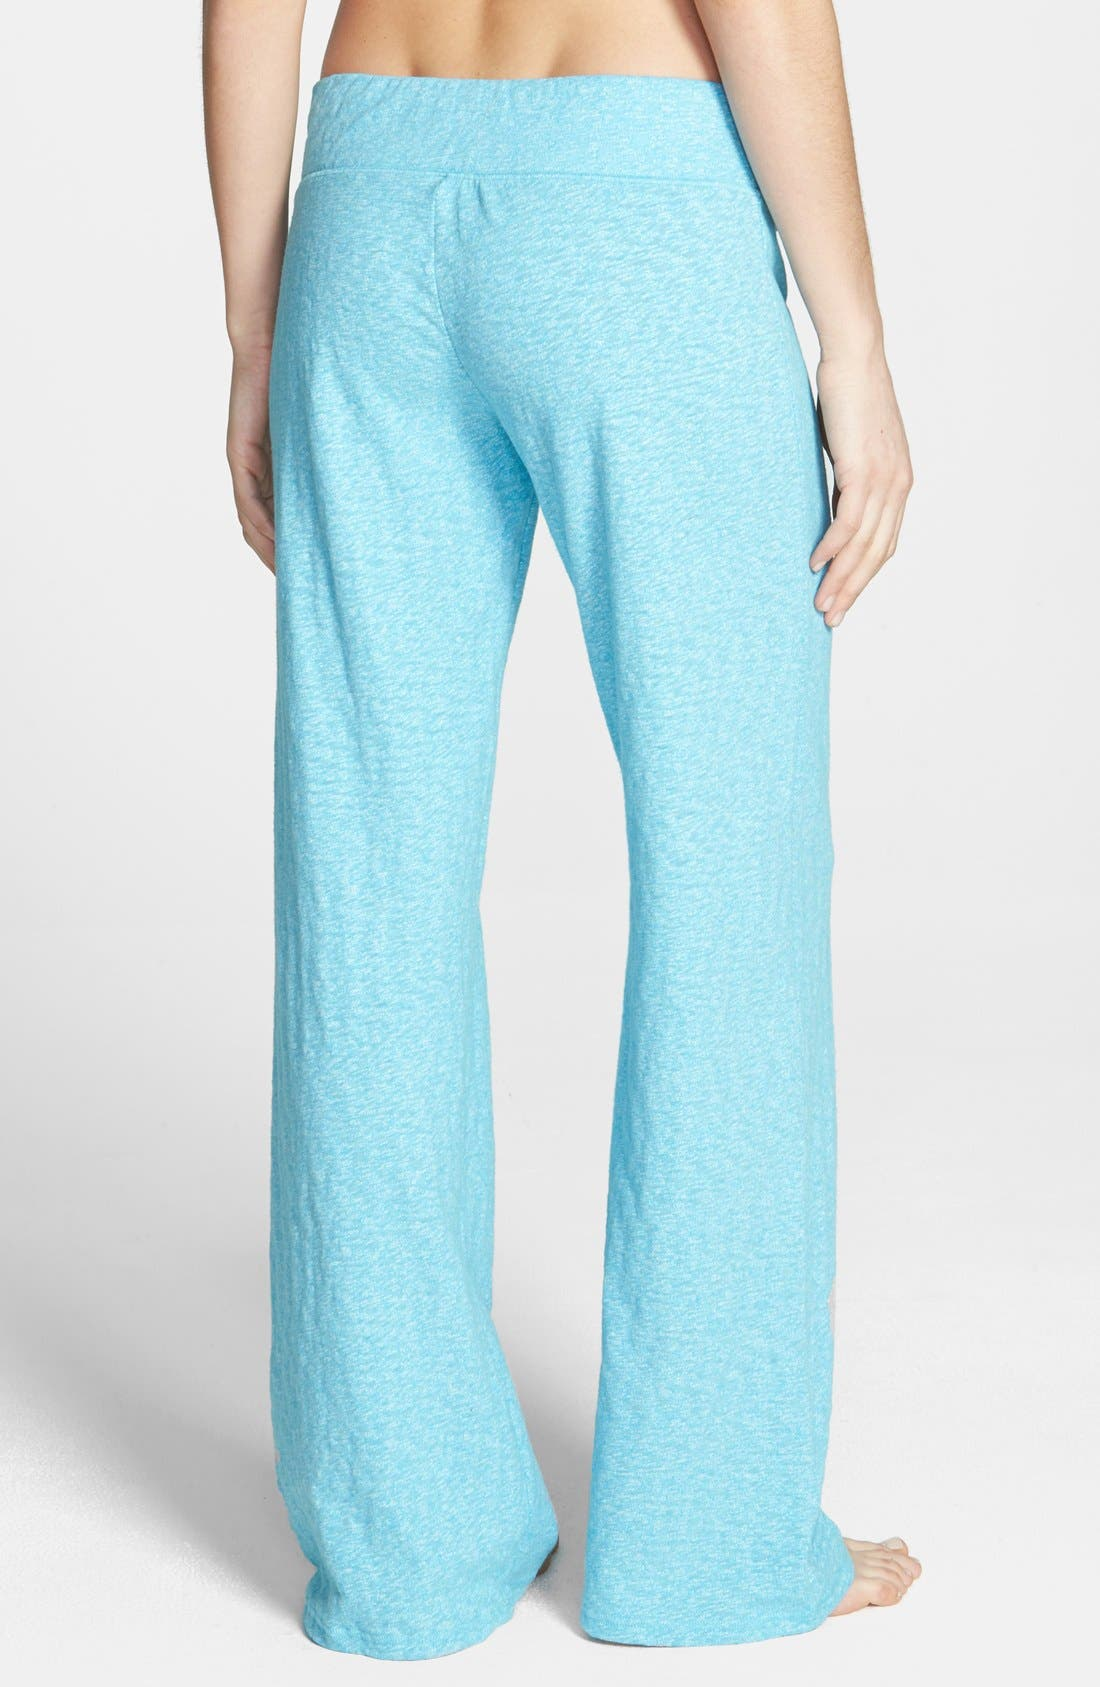 Alternate Image 2  - Make + Model 'Vintage Sleepy Time' Lounge Pants